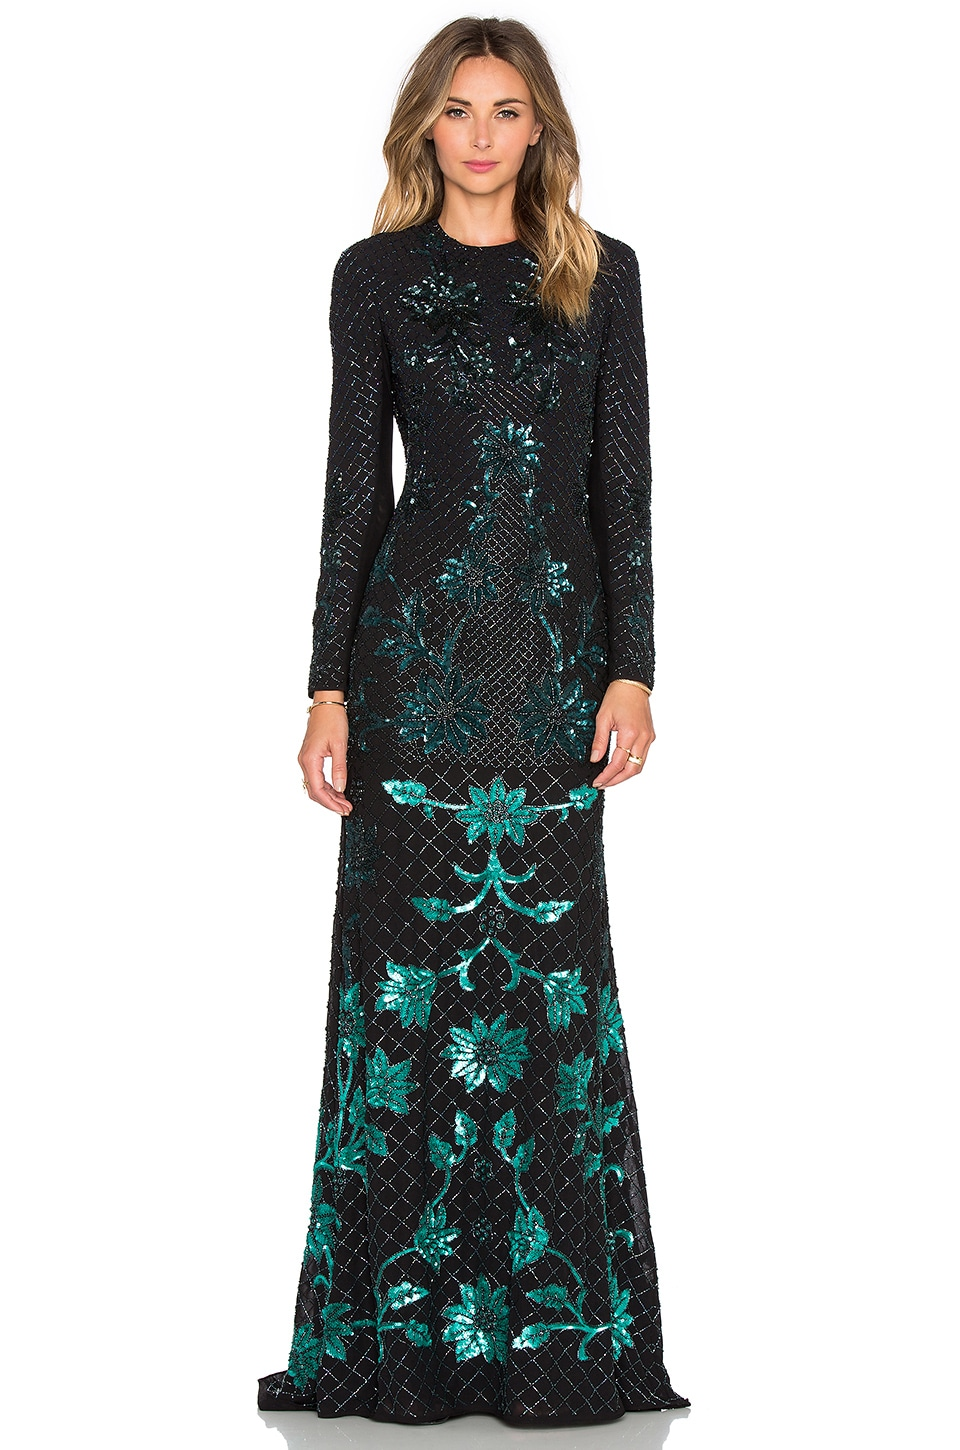 Needle & Thread Ombre Mesh Gown in Black & Green